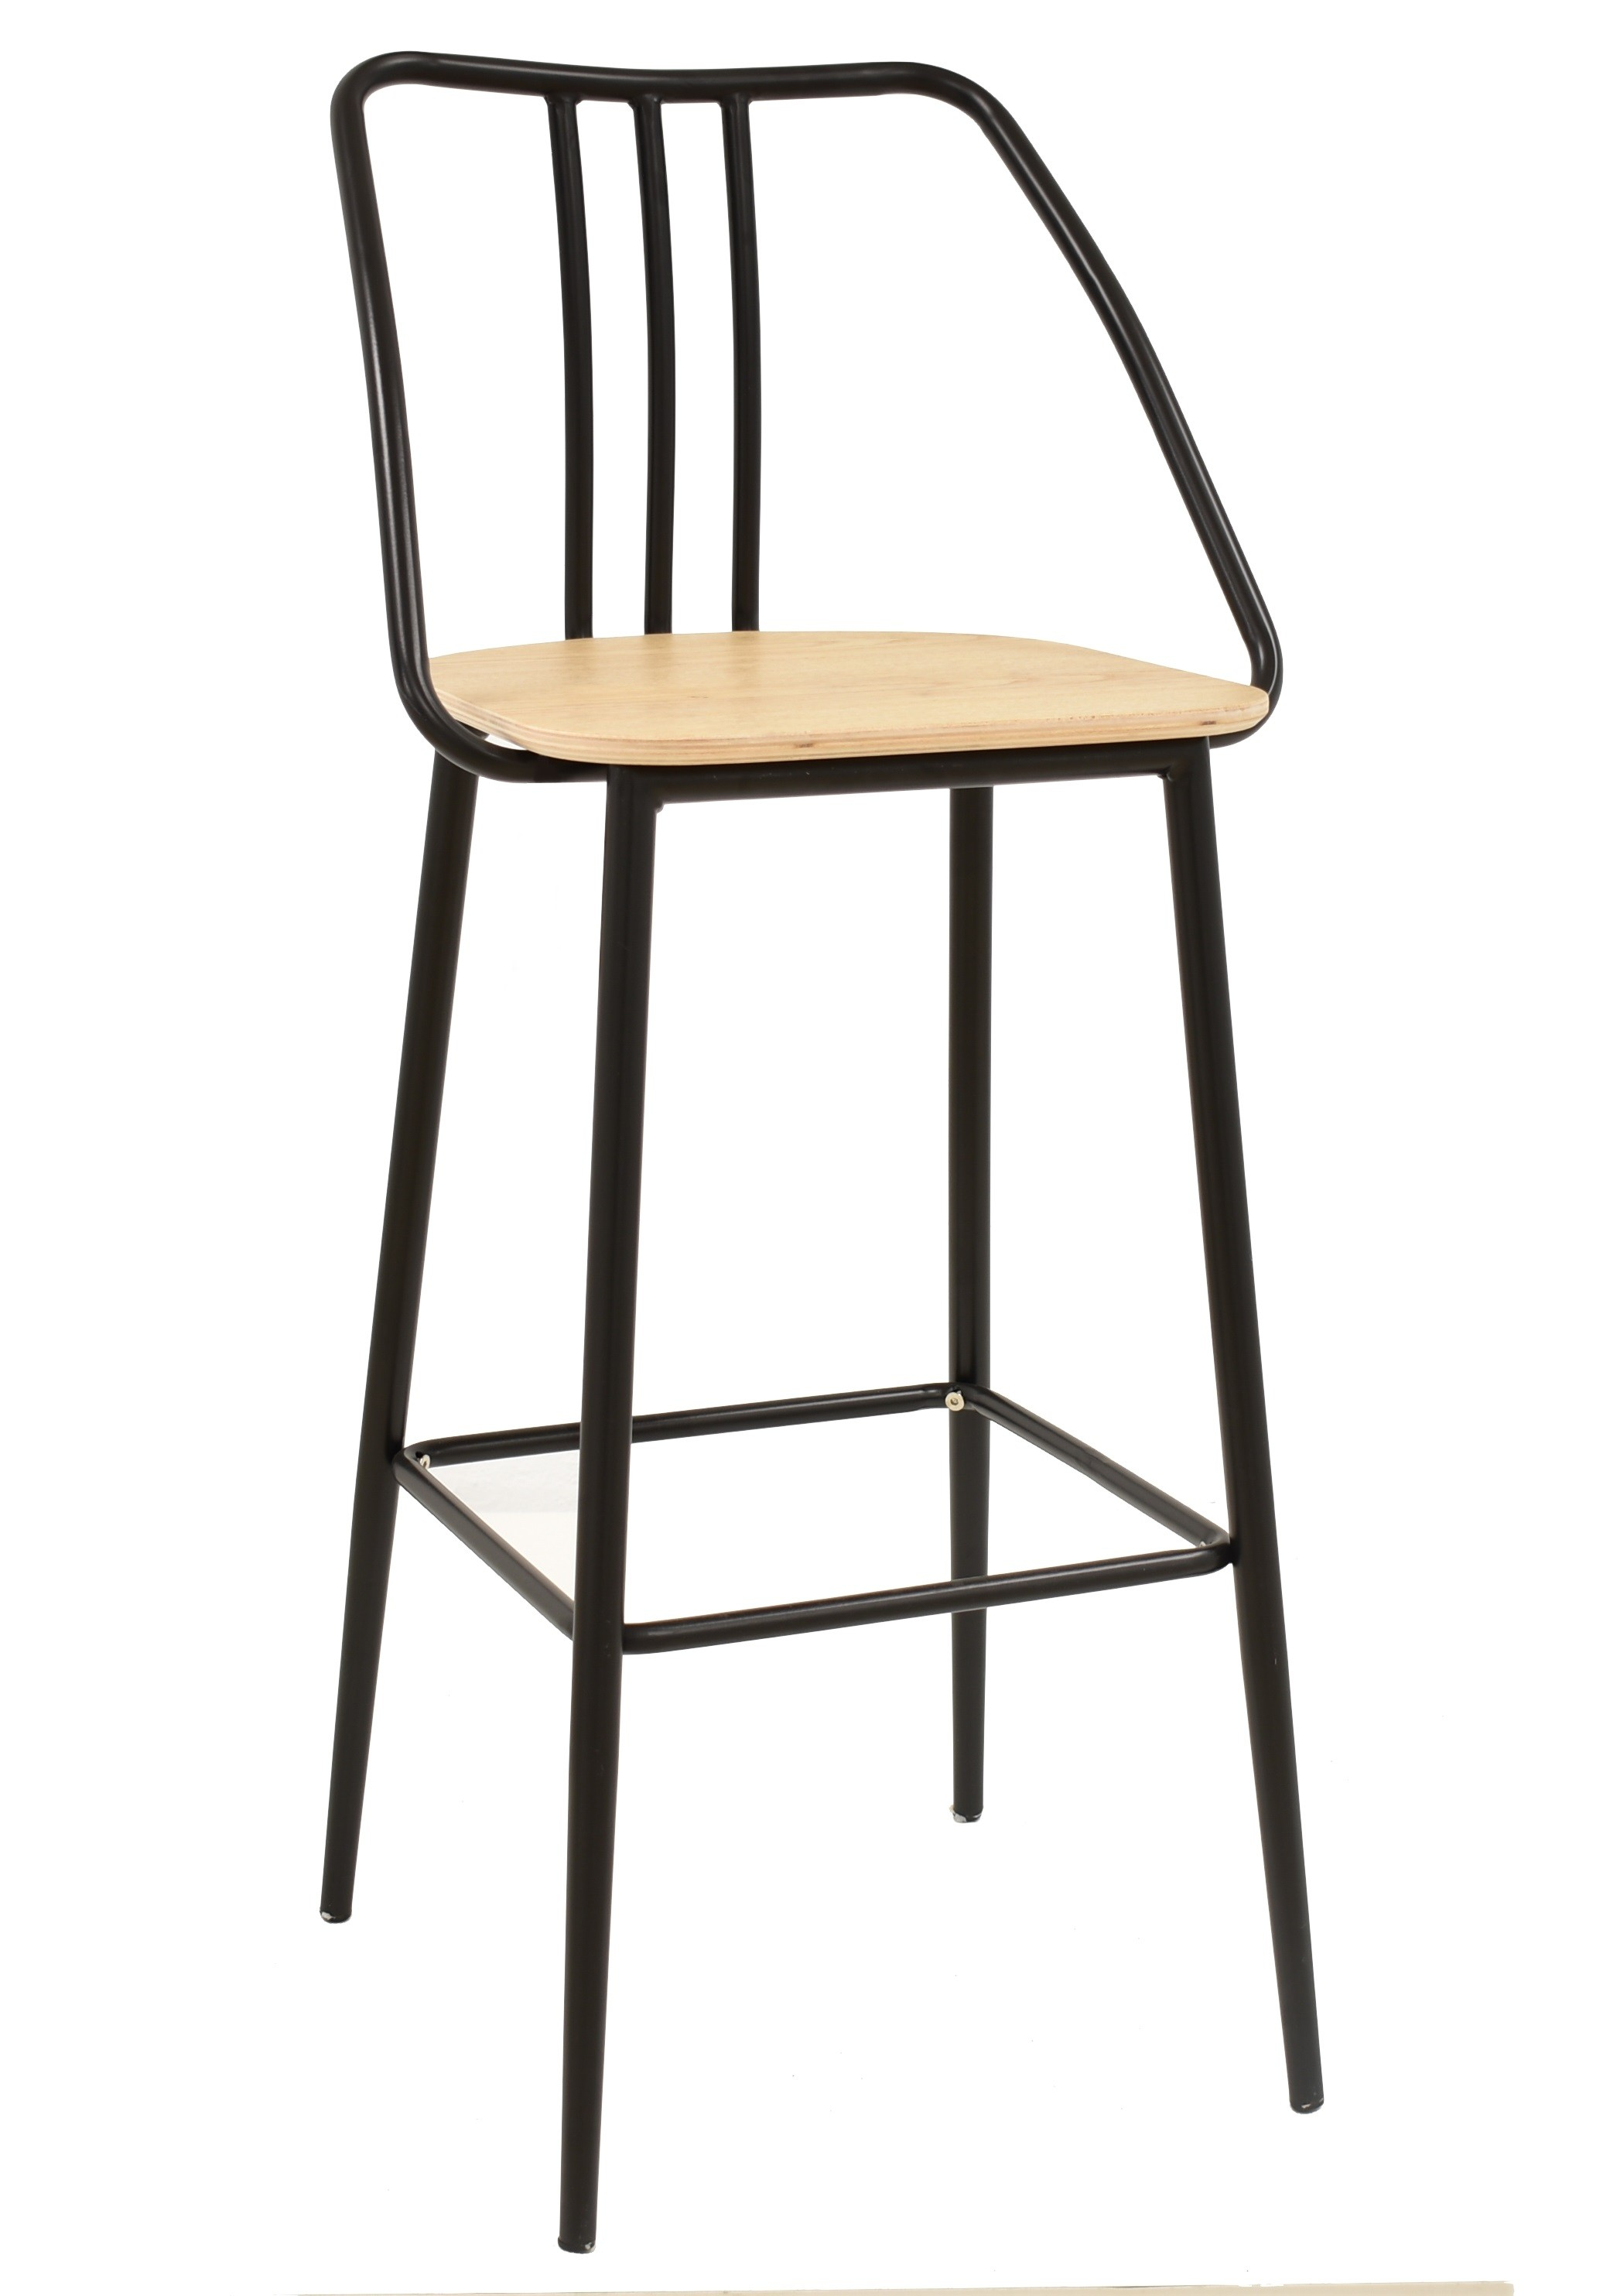 Stool KOBE, Metal, Wood, Black